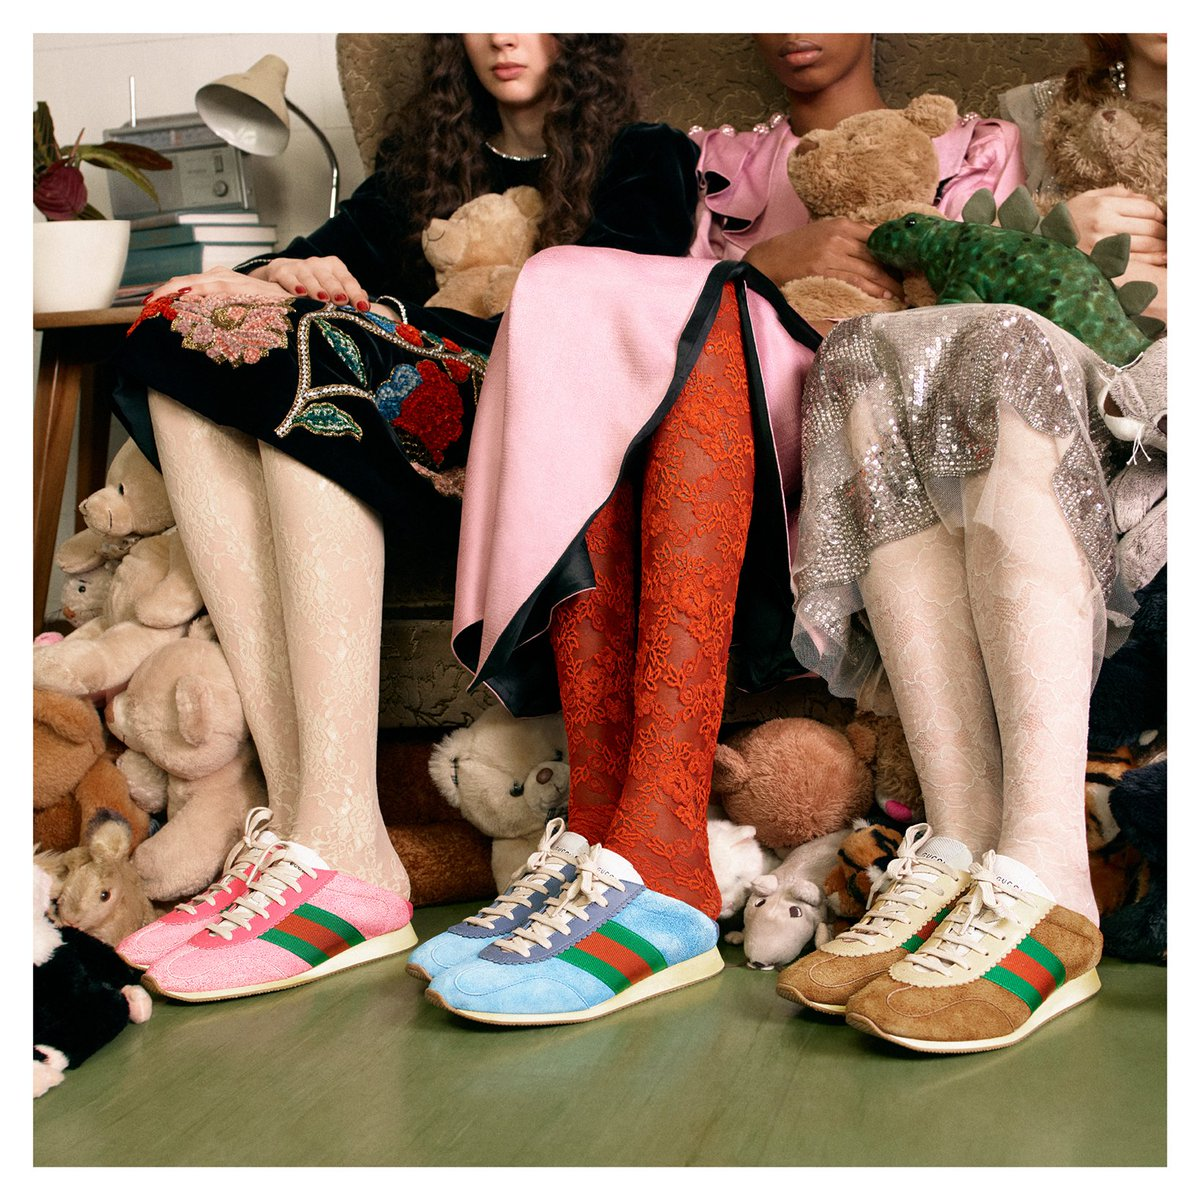 Retro-style with saturated hues, new suede sneakers feature the House Web stripe on the side, from #GucciFW18 by #AlessandroMichele.